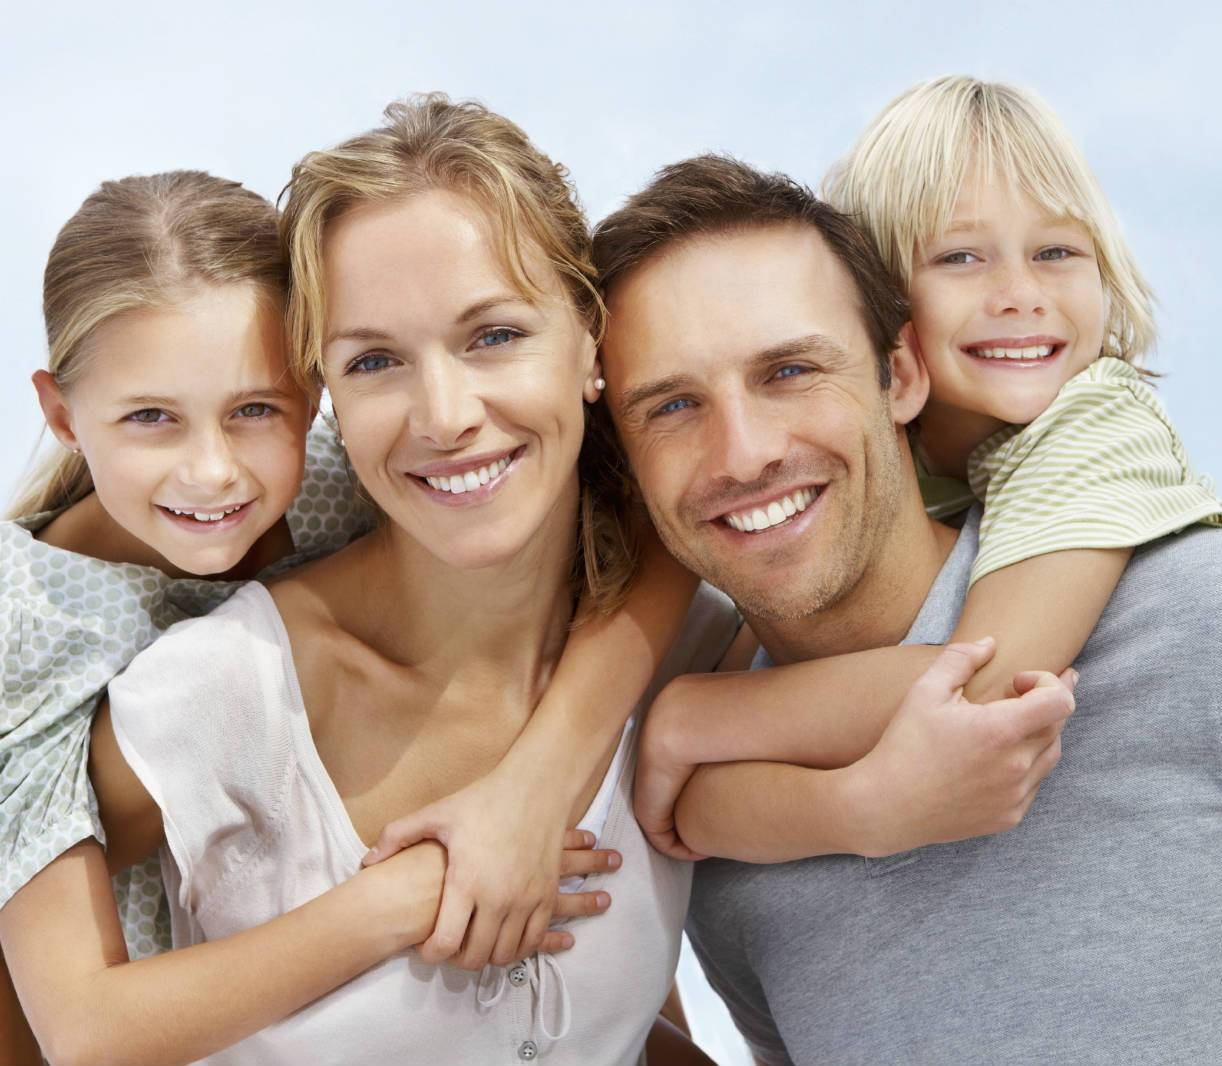 parents-are-happy-with-their-kids1